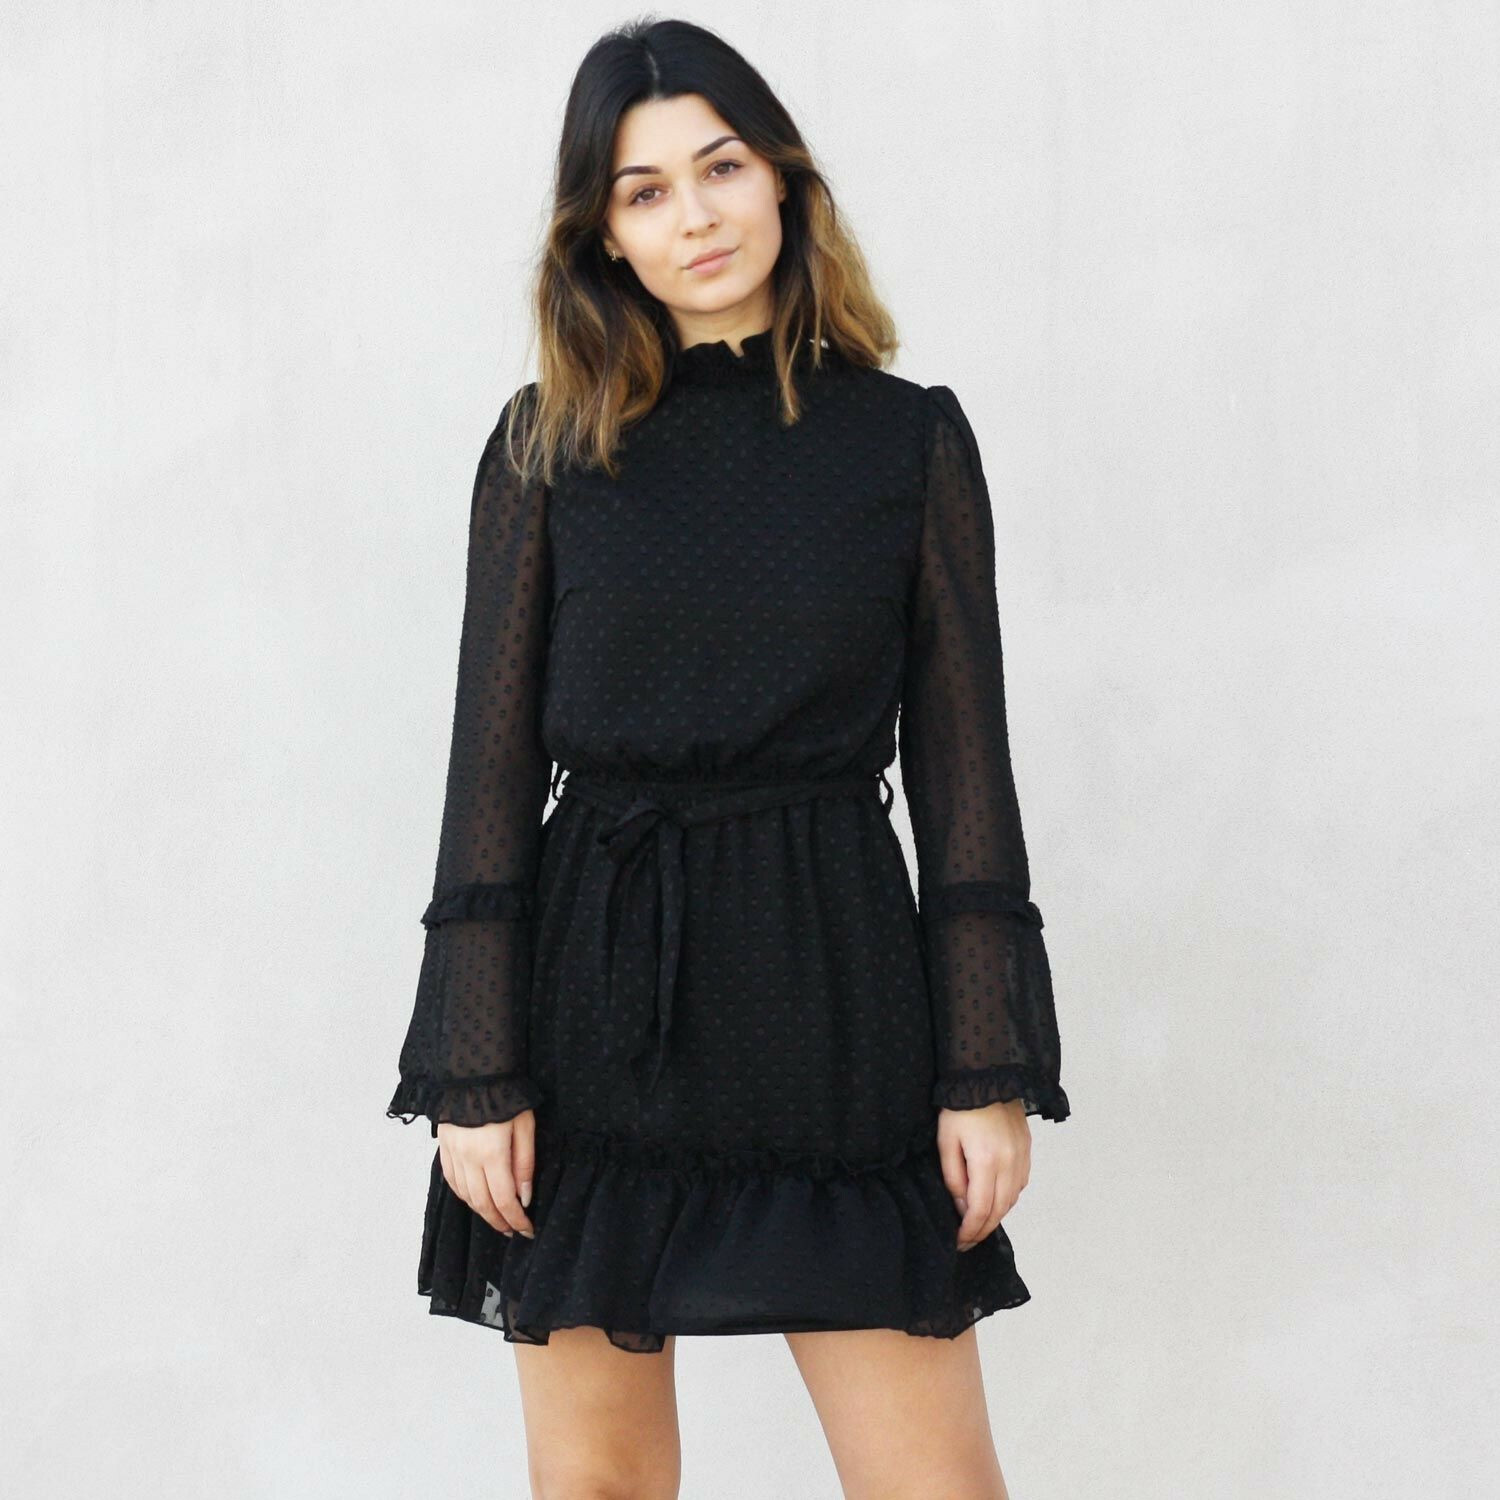 ULTIMATE ROMANCE DRESS